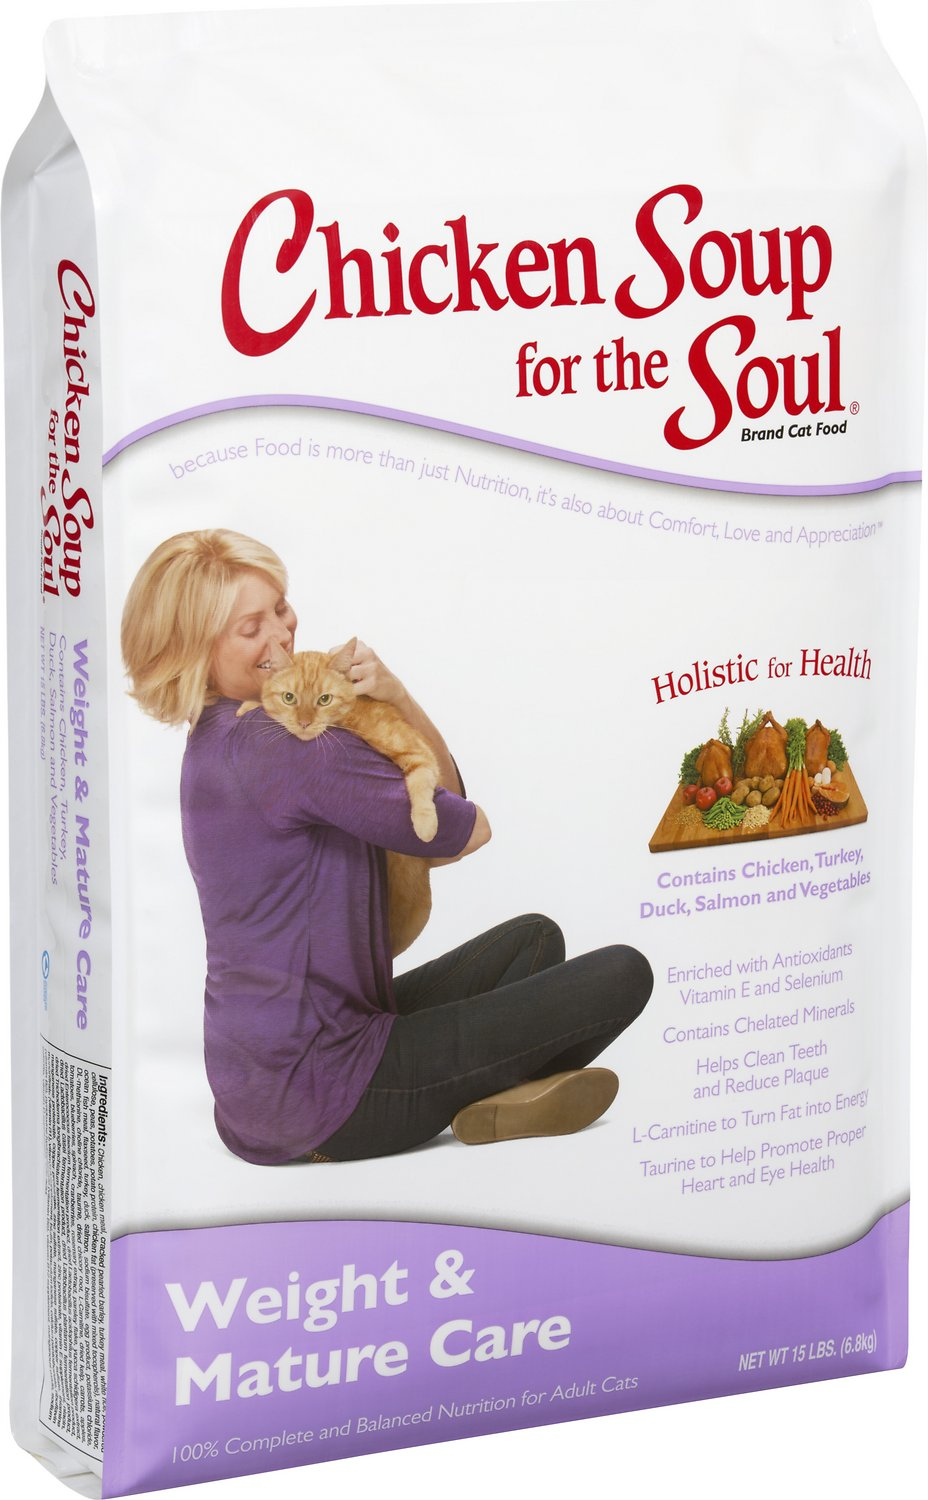 Chicken Soup for the Soul Weight & Mature Care Dry Cat Food Image